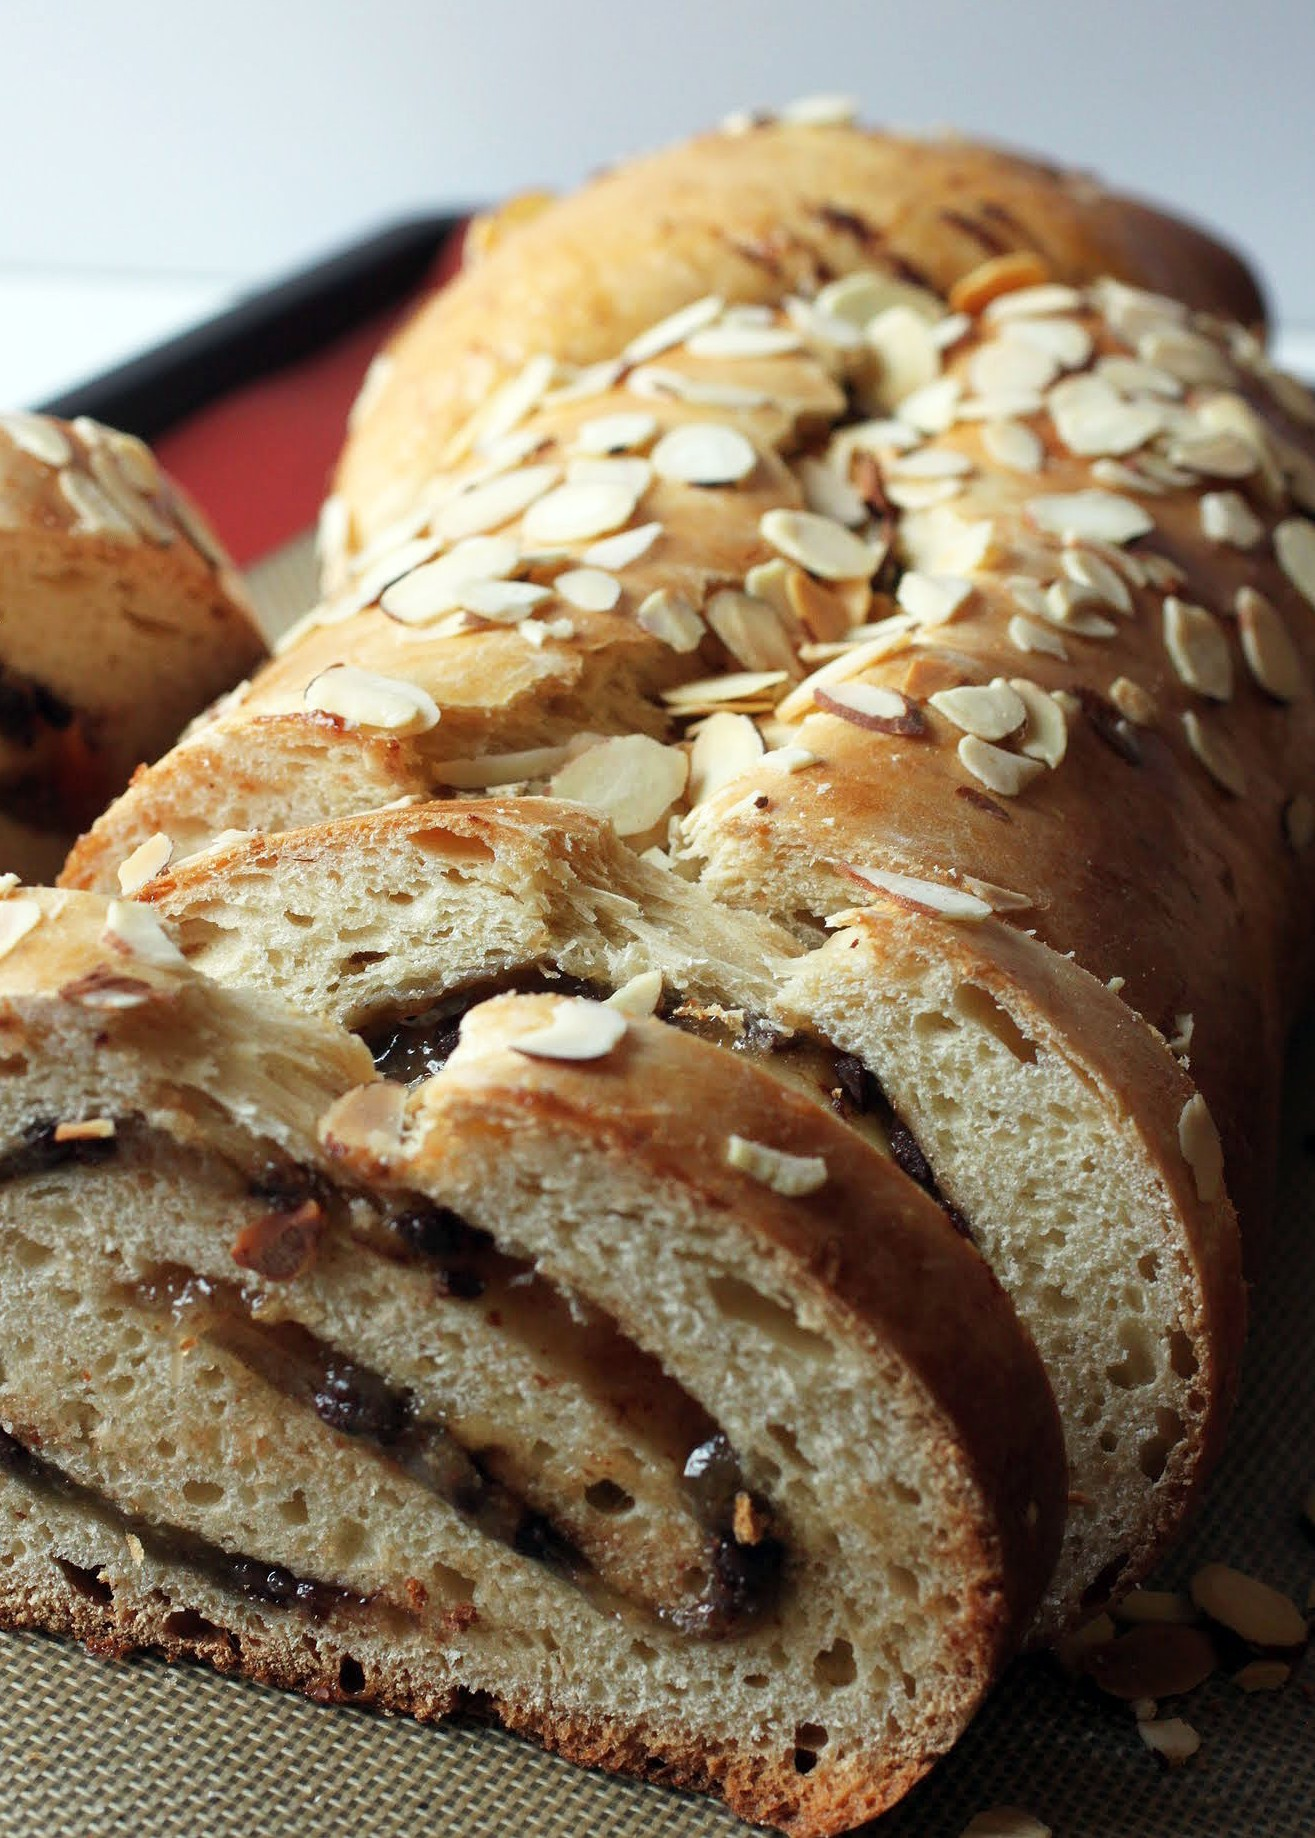 Almond Chocolate Swirl Bread